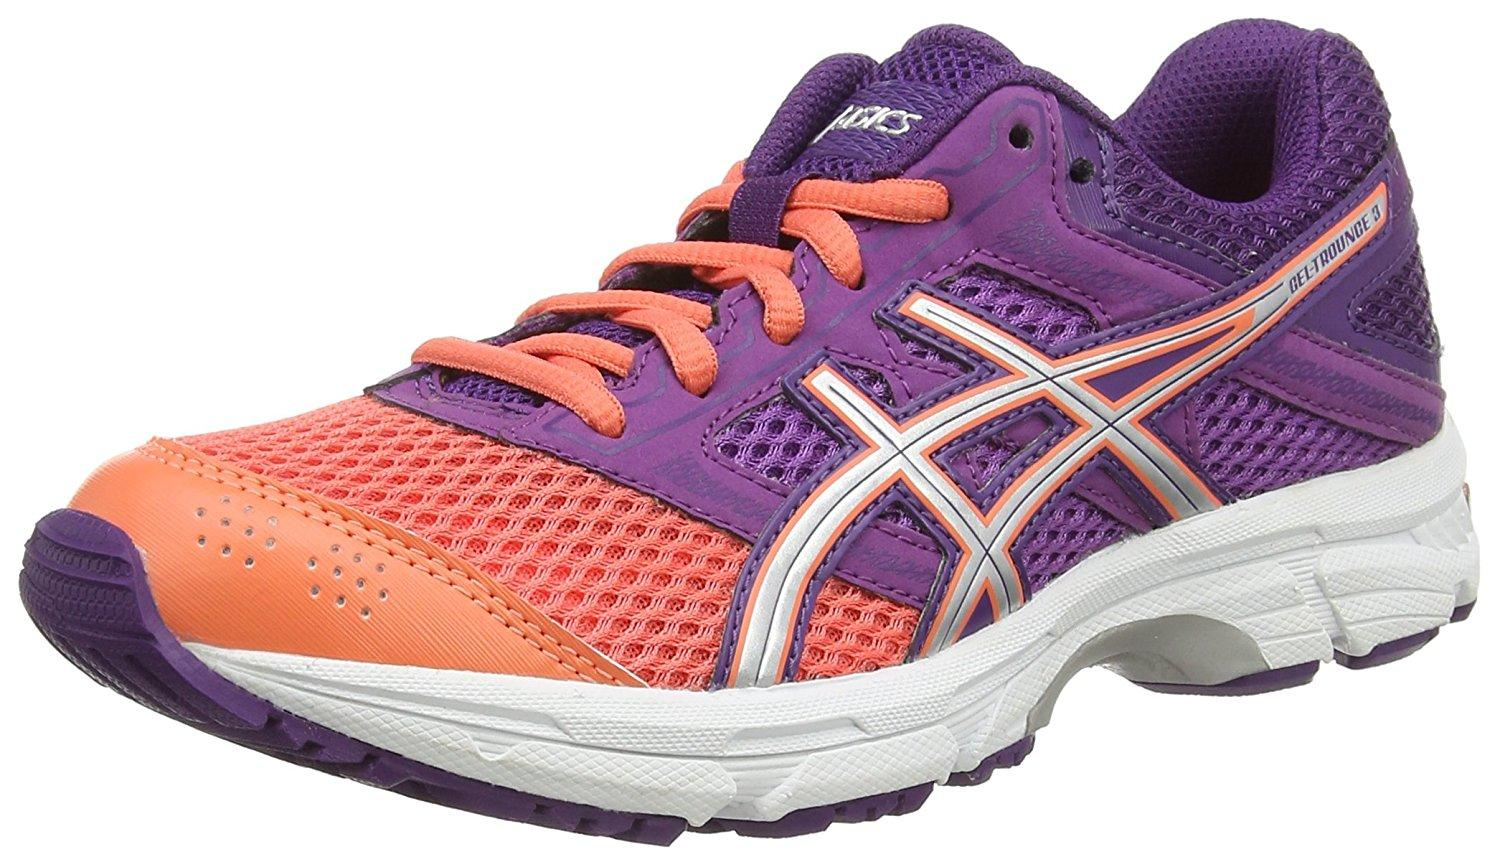 the Asics Gel Trounce 3 shown from the front/side